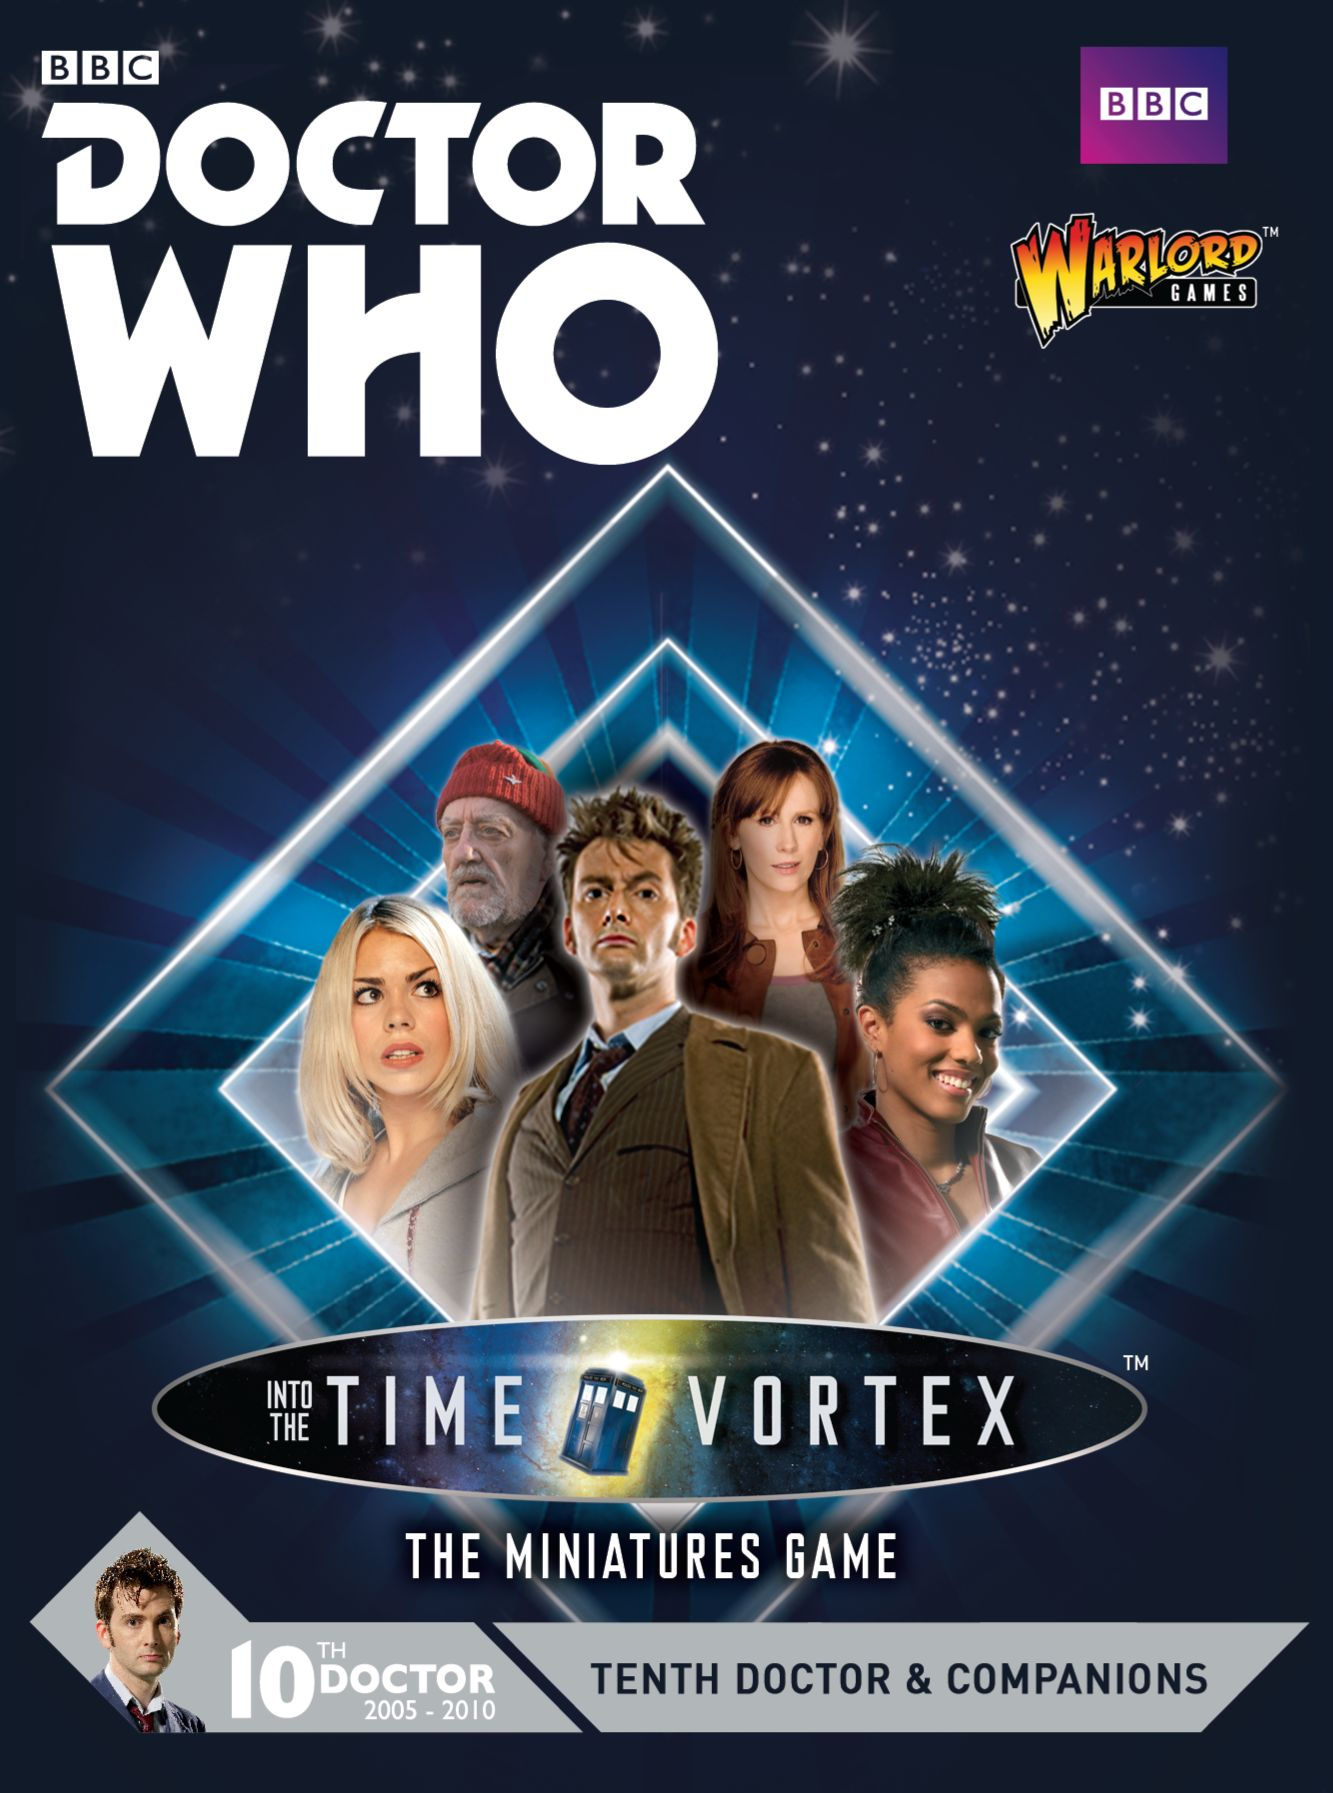 Warlord Games: Tenth Doctor and Companions (cover) (Credit: Warlord Games)